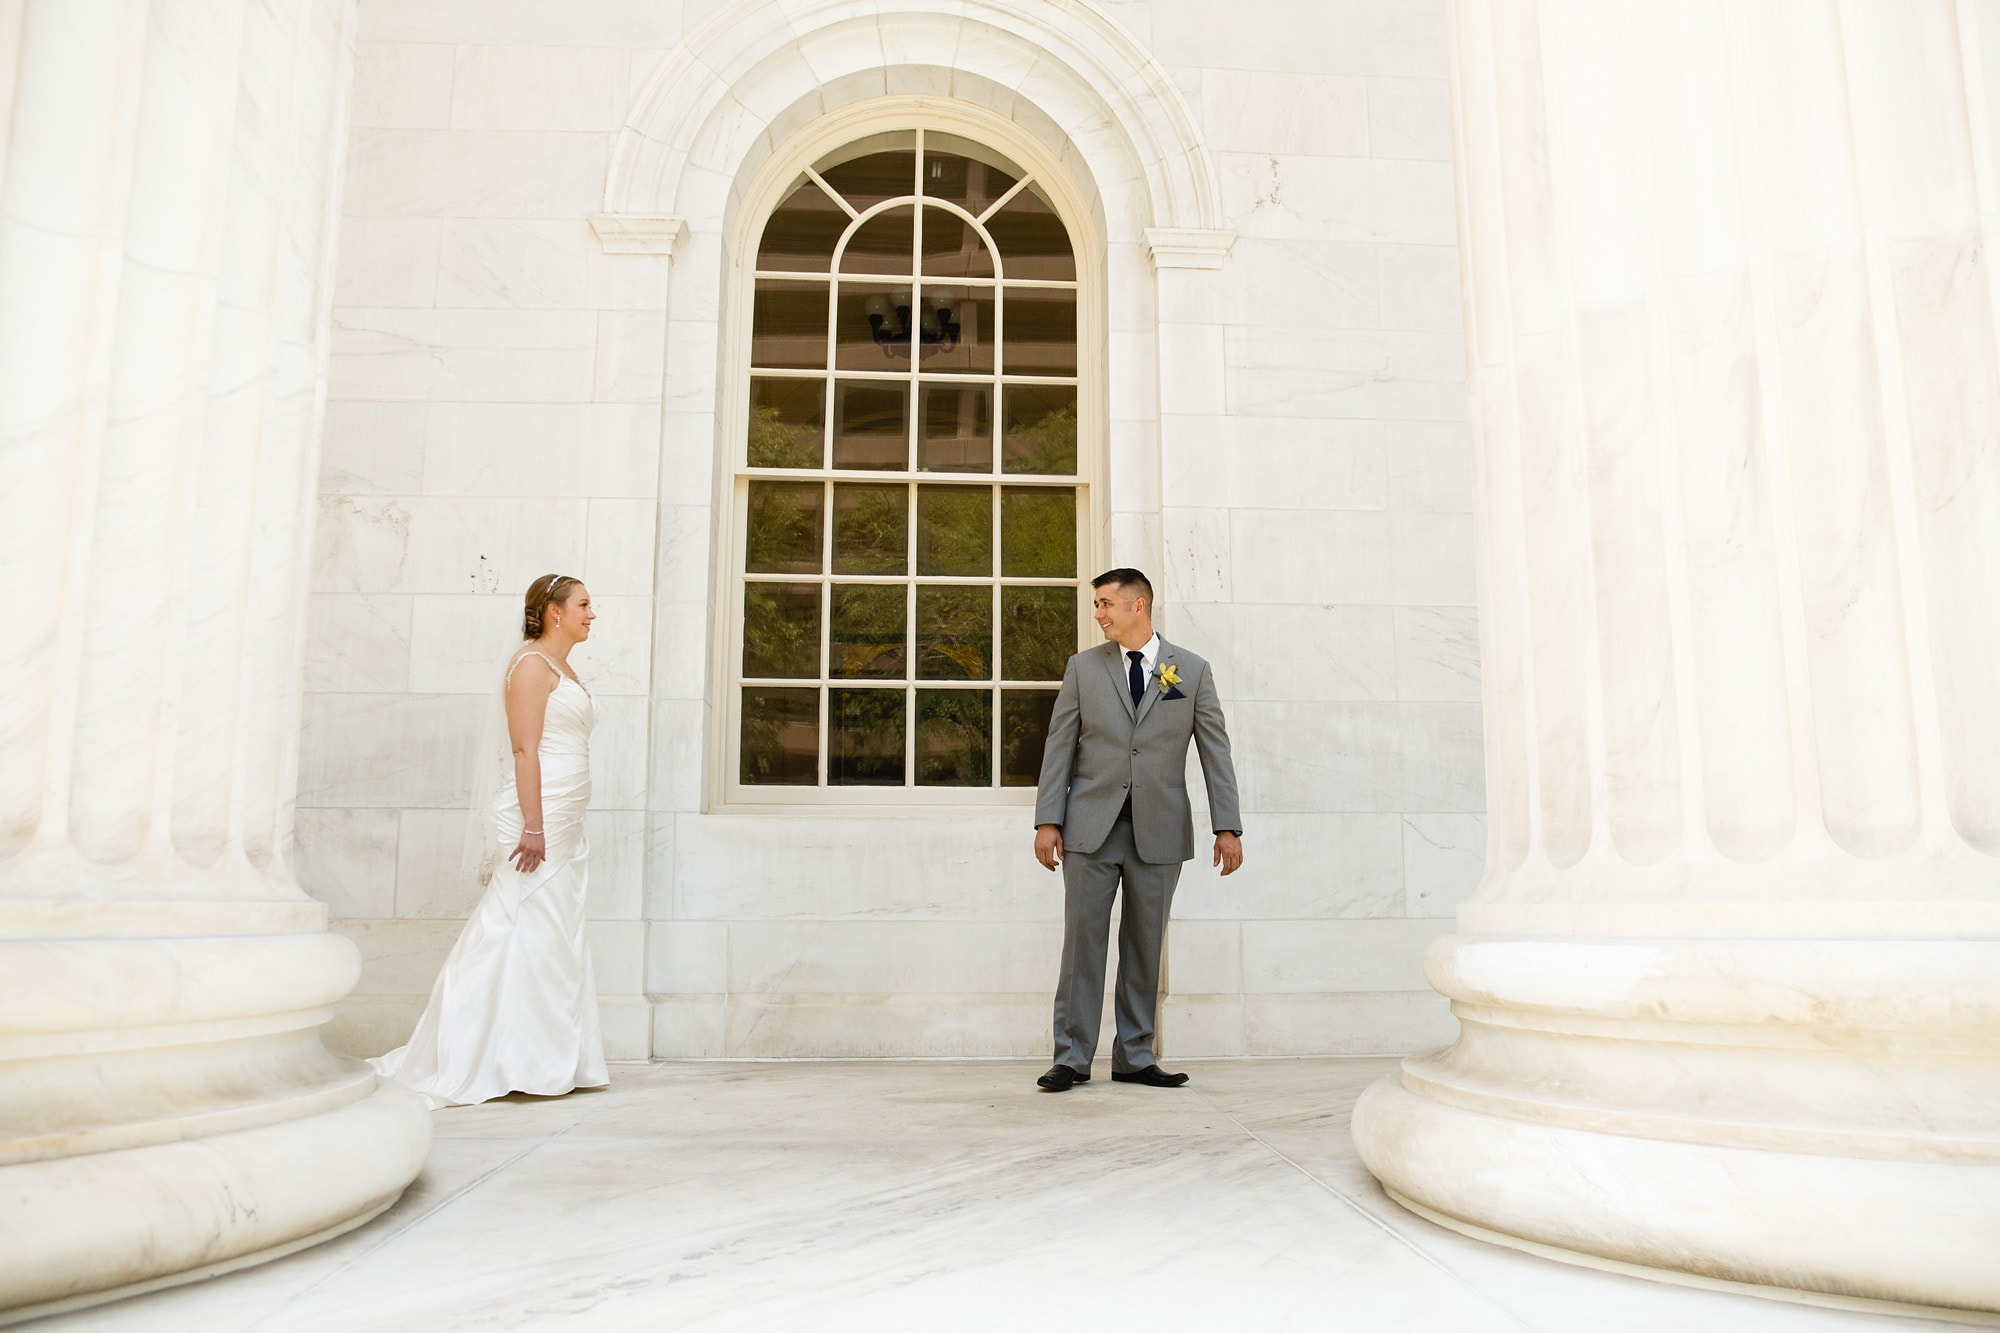 The bride and groom see each other during a first look at the courthouse in Denver